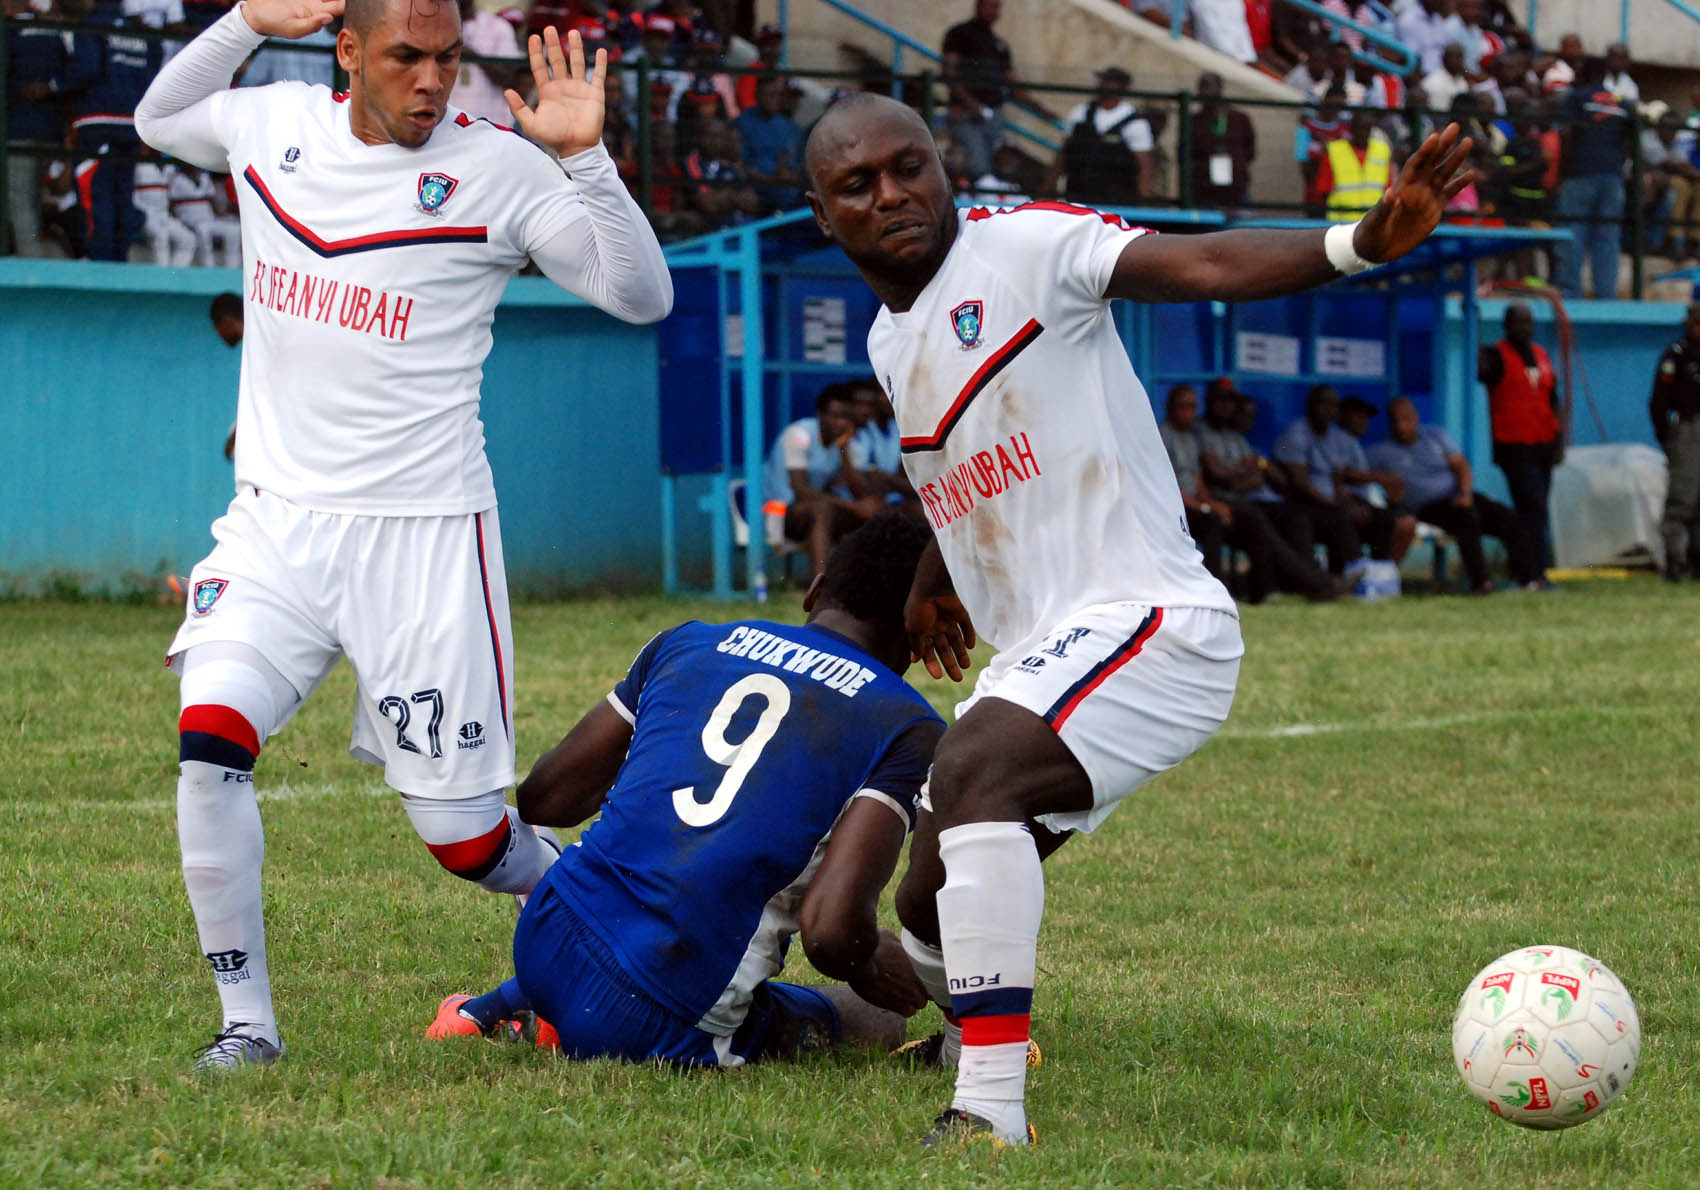 Federation Cup: Ifeanyiubah Confident Of Ending Crown Fairytale